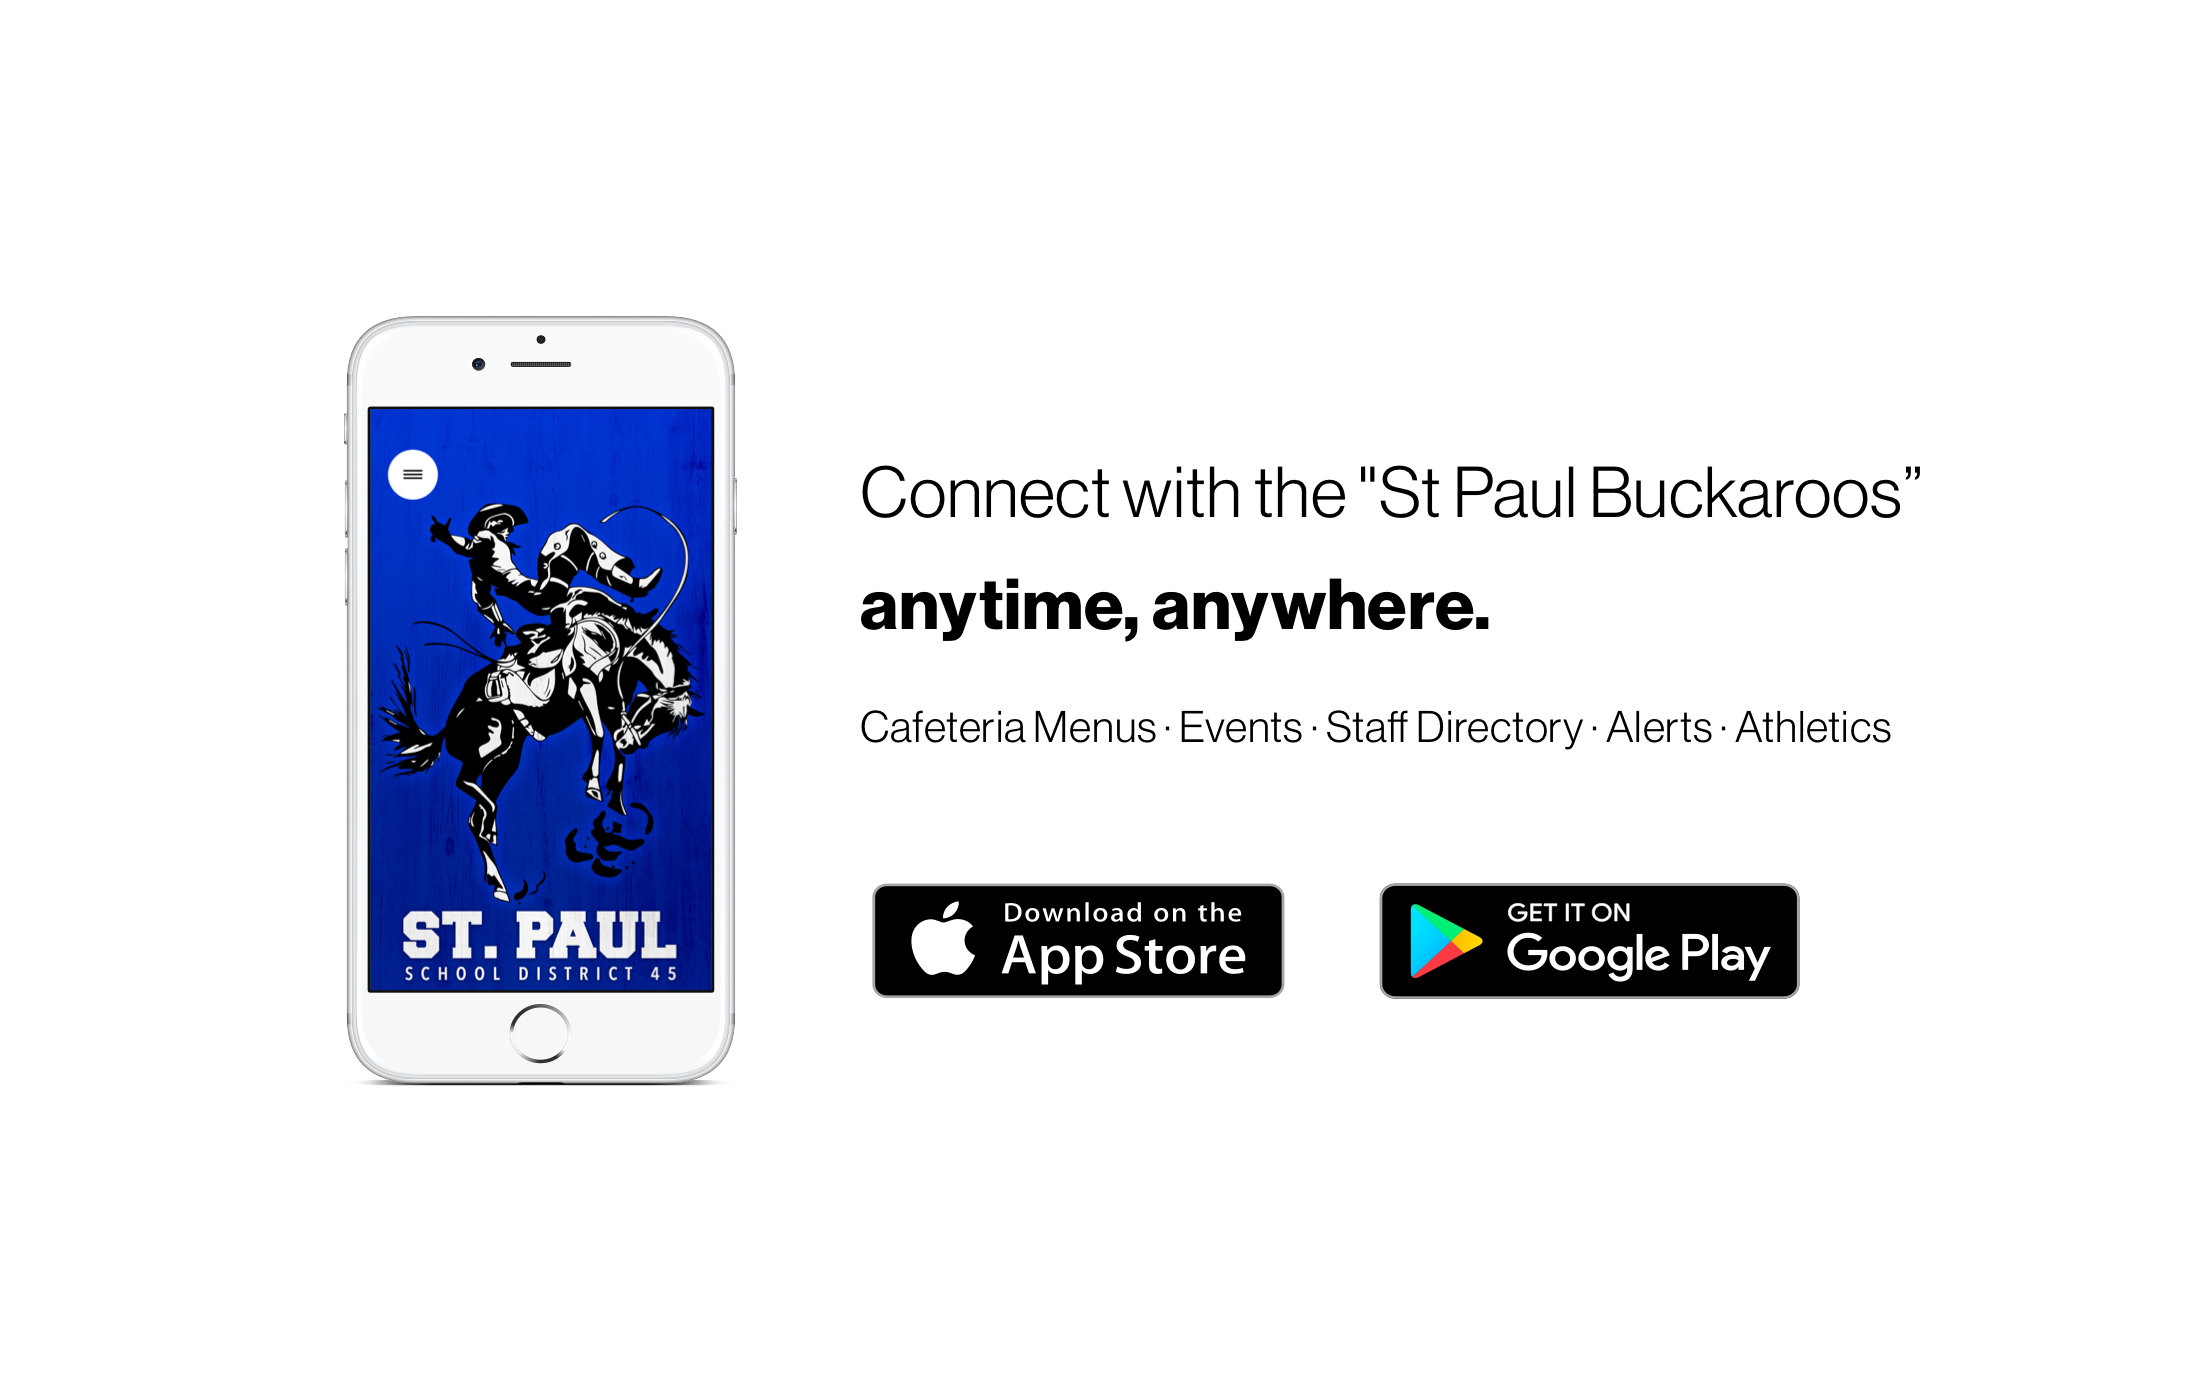 Connect with St Paul